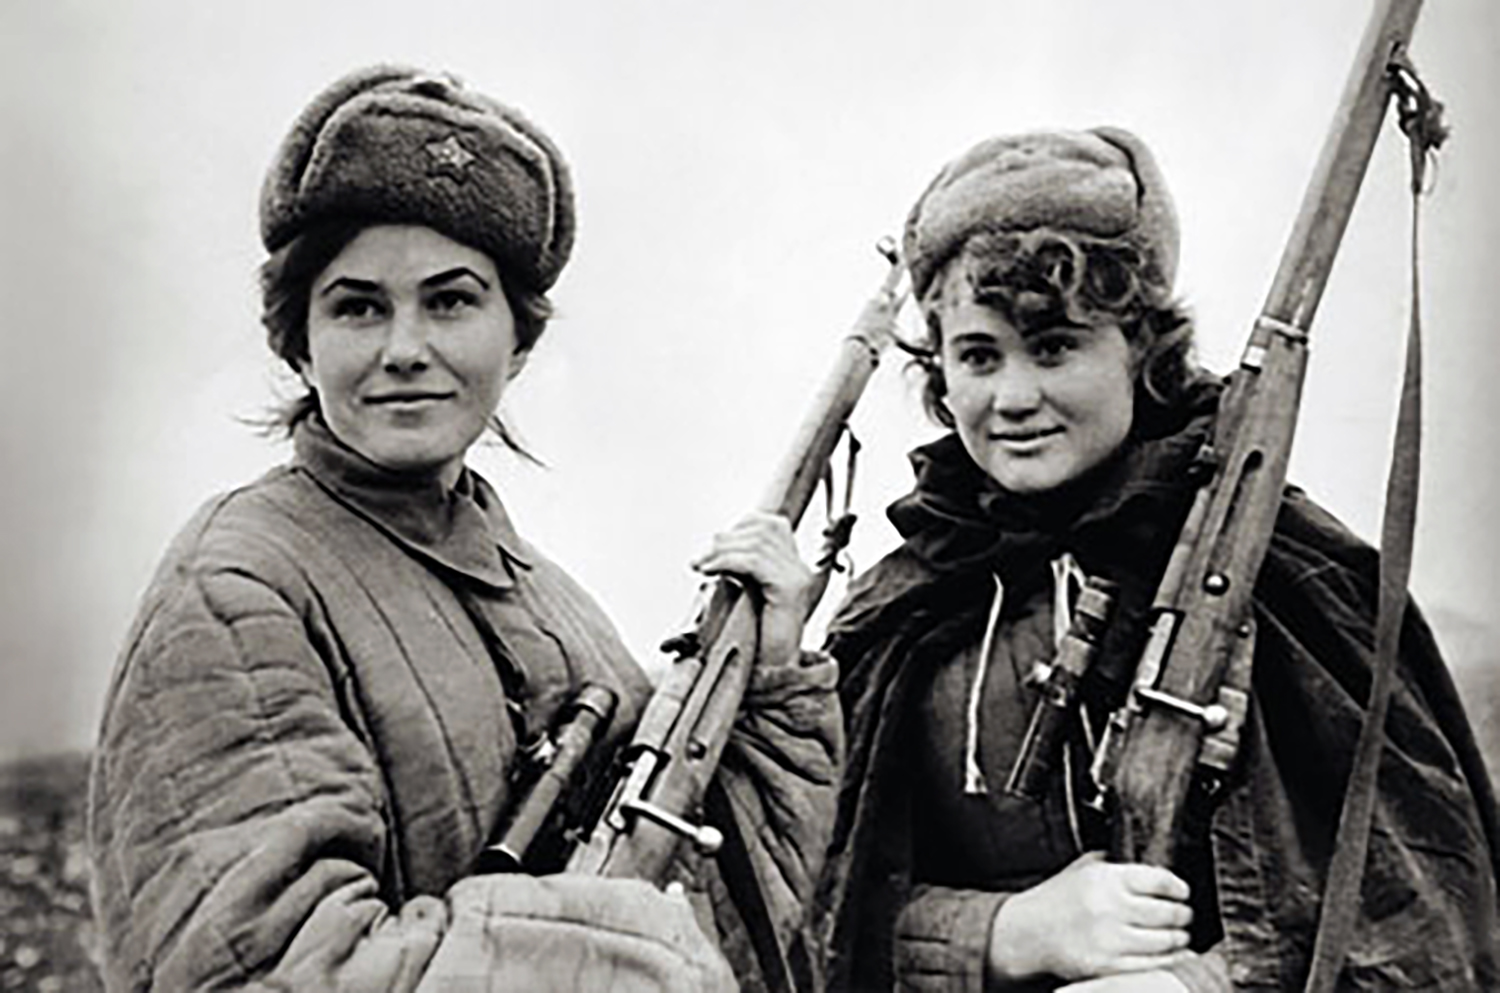 Partisan fighters. Photographer unknown.